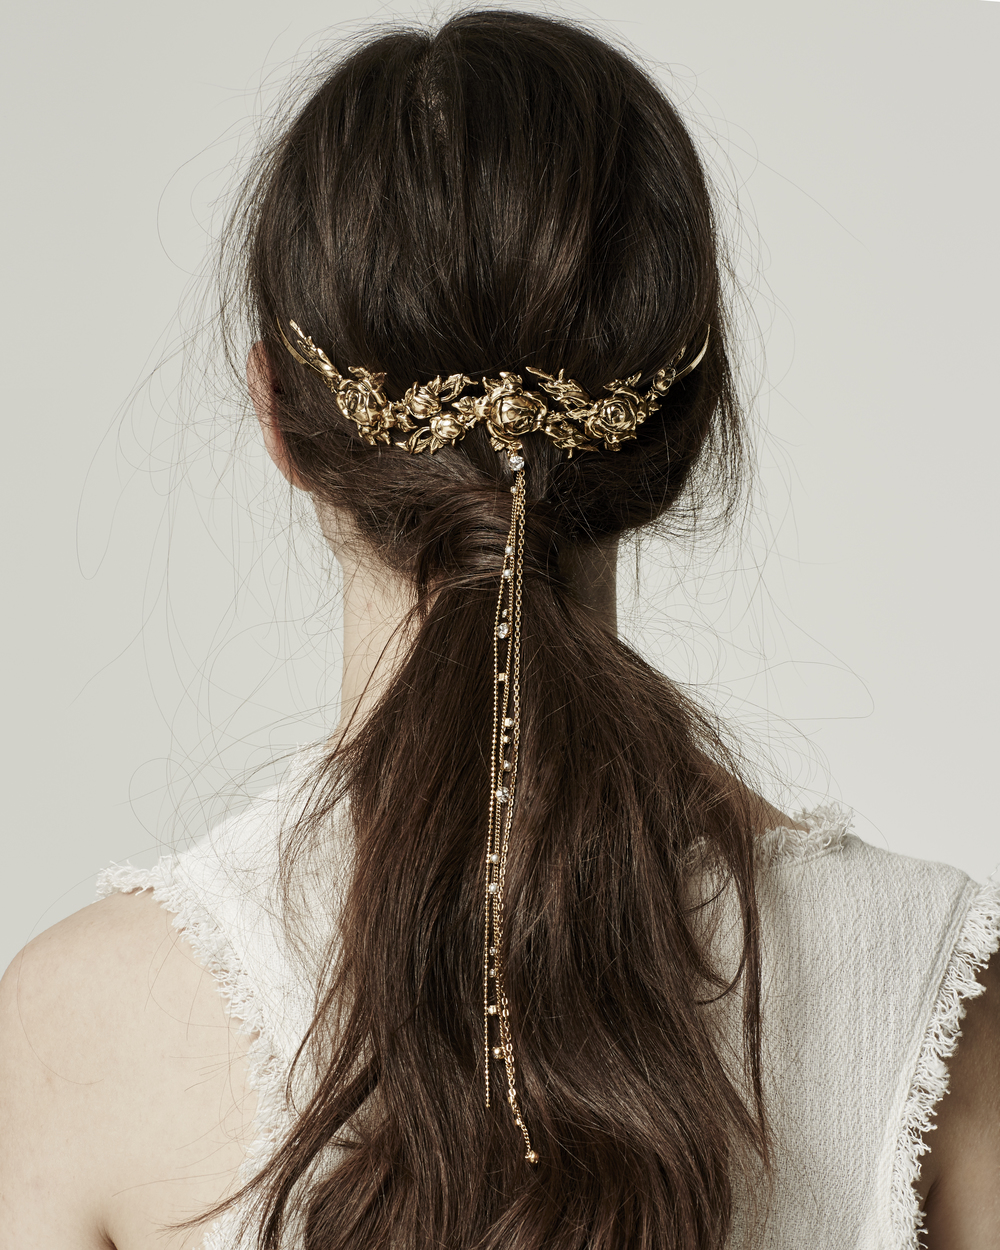 a messy low ponytail with a gold floral hair vine with long chains and rhinestons